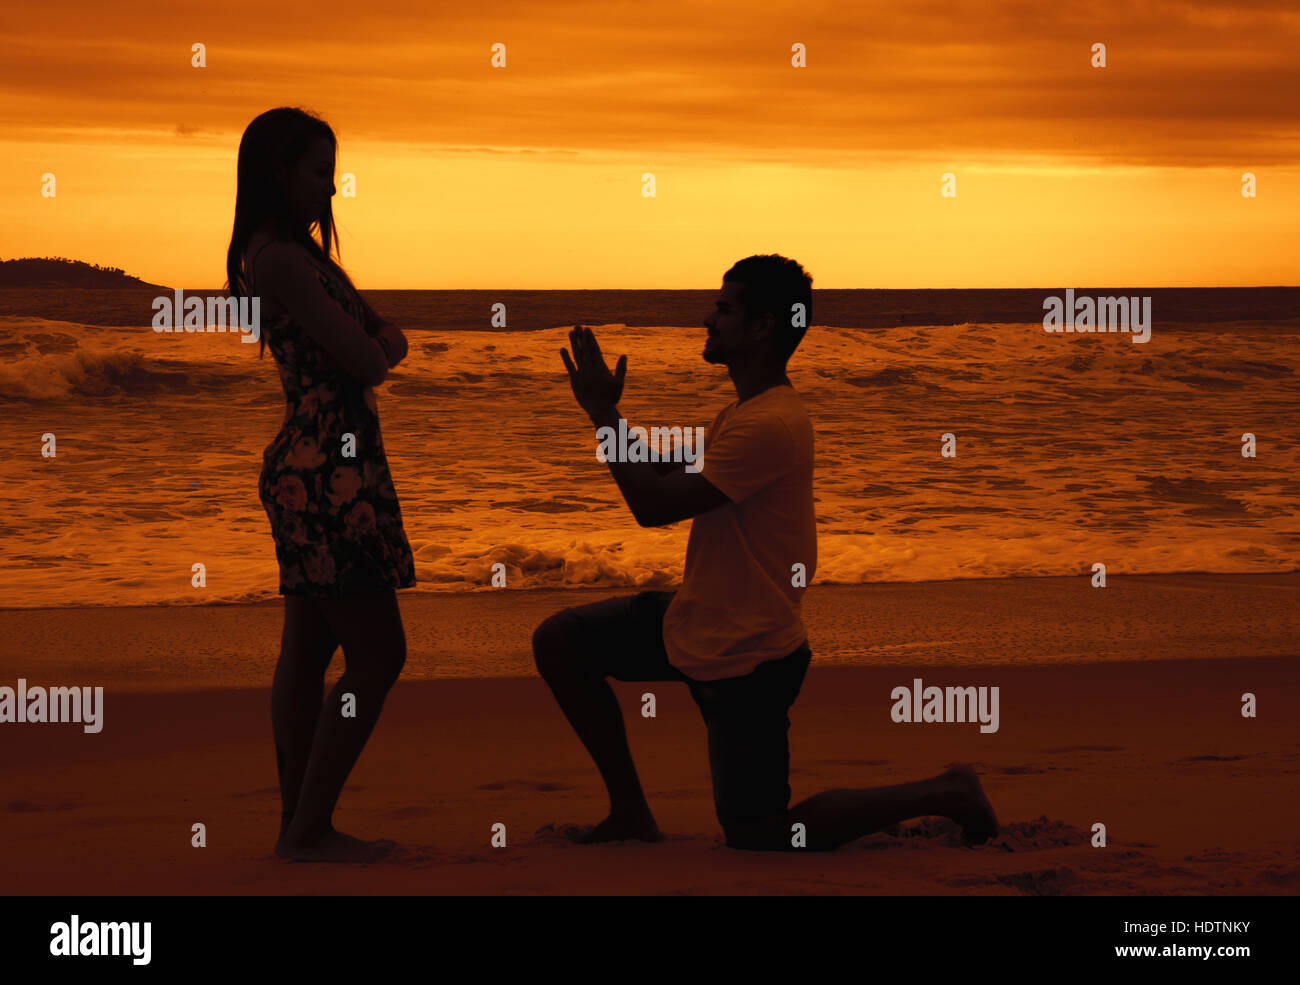 Apology of a young man outdoor at sunset - Stock Image